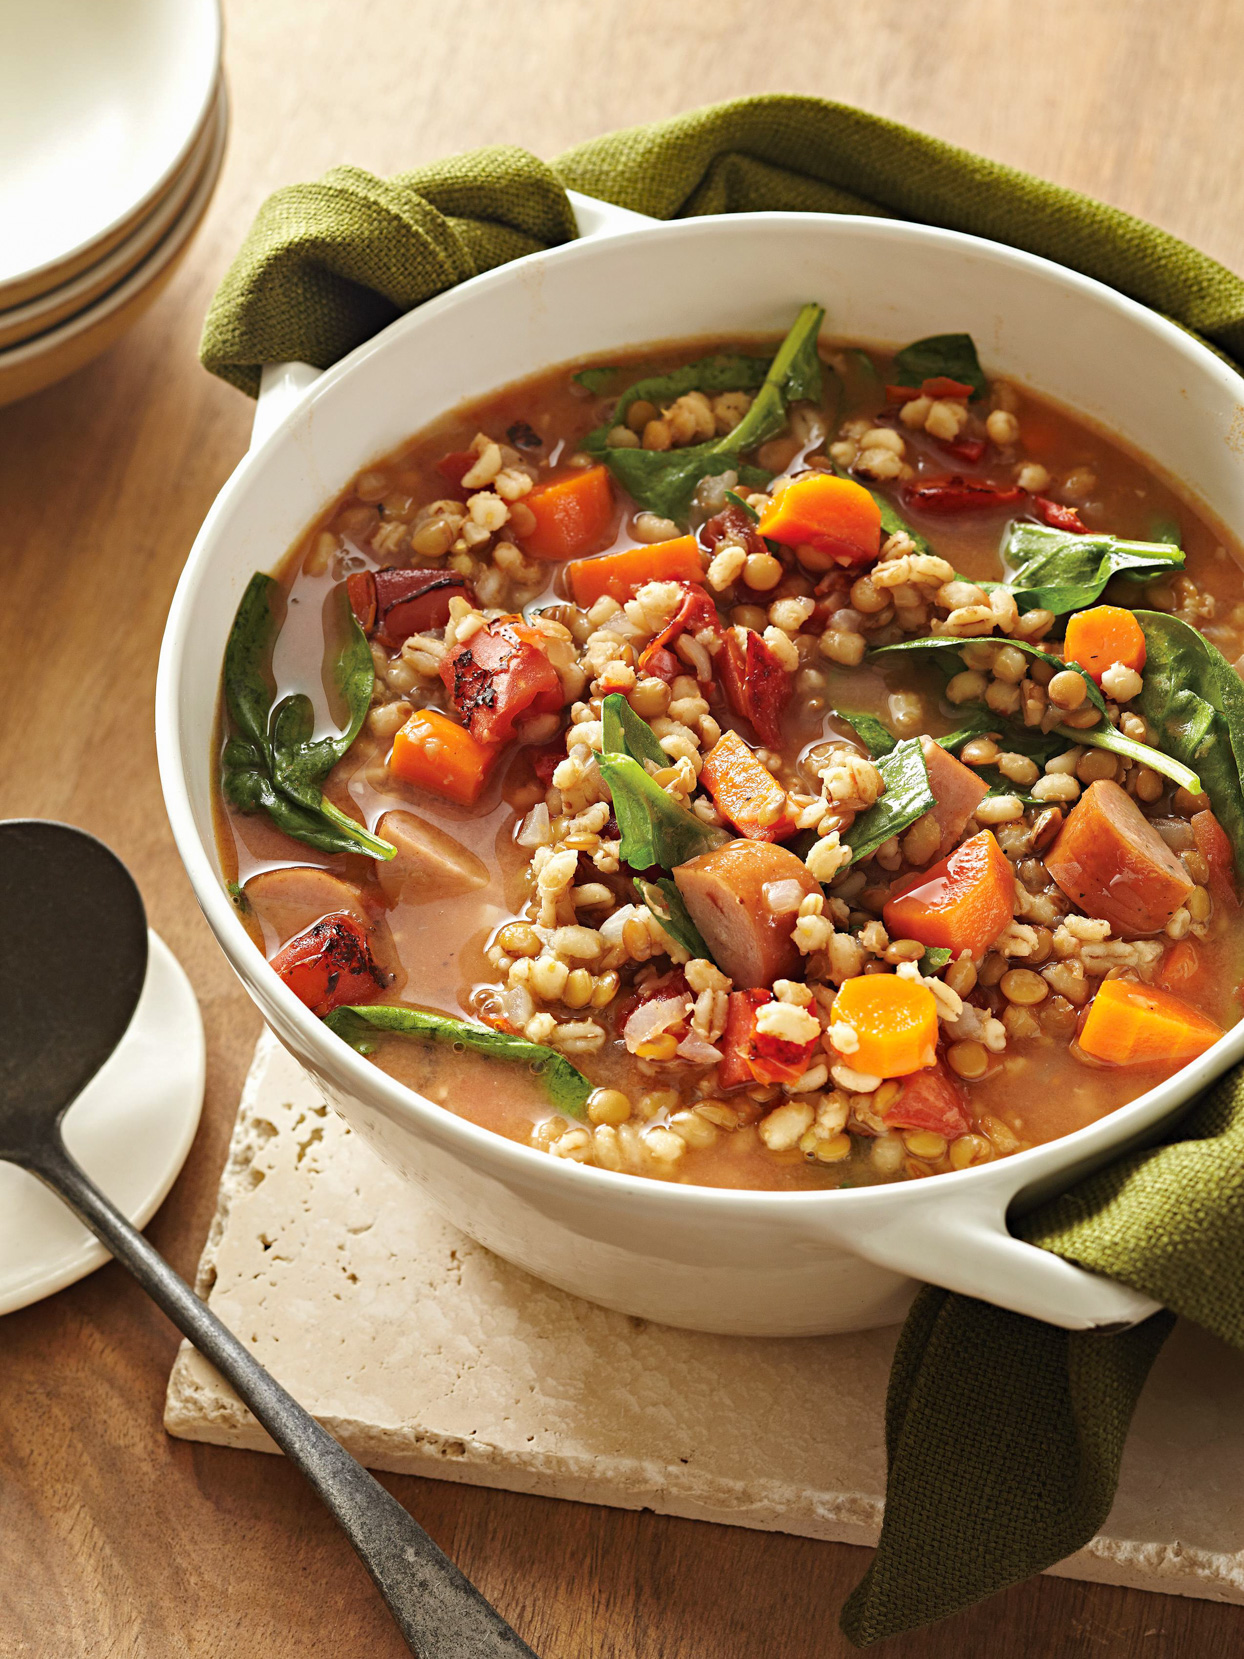 Lentil-Toasted Barley Soup with Sausage